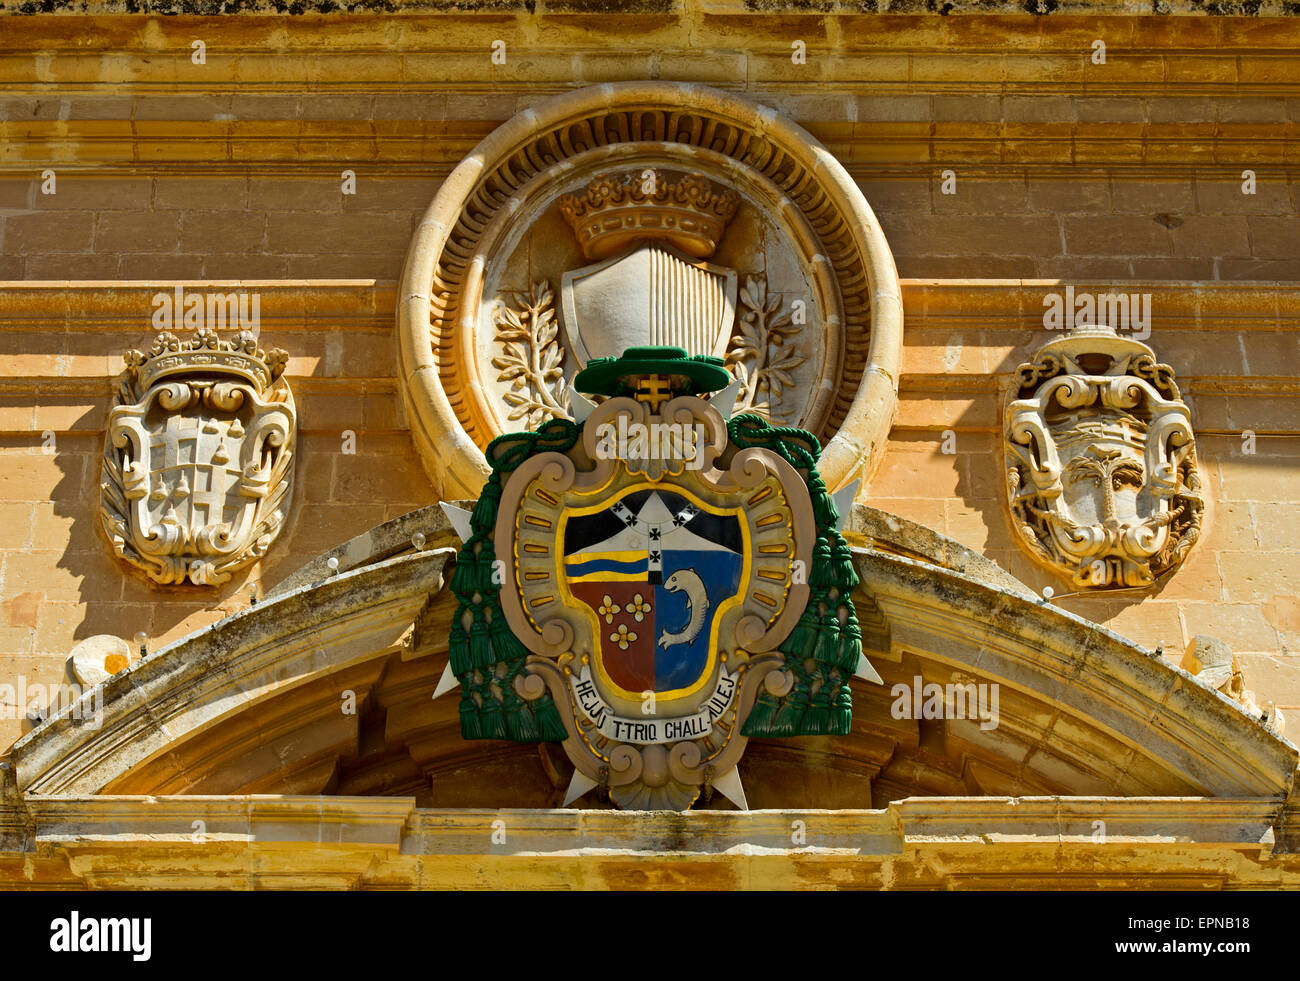 Coat of arms of the bishop at the St. Paul's Cathedral, Mdina, also Città Vecchia or Città Notabile, - Stock Image